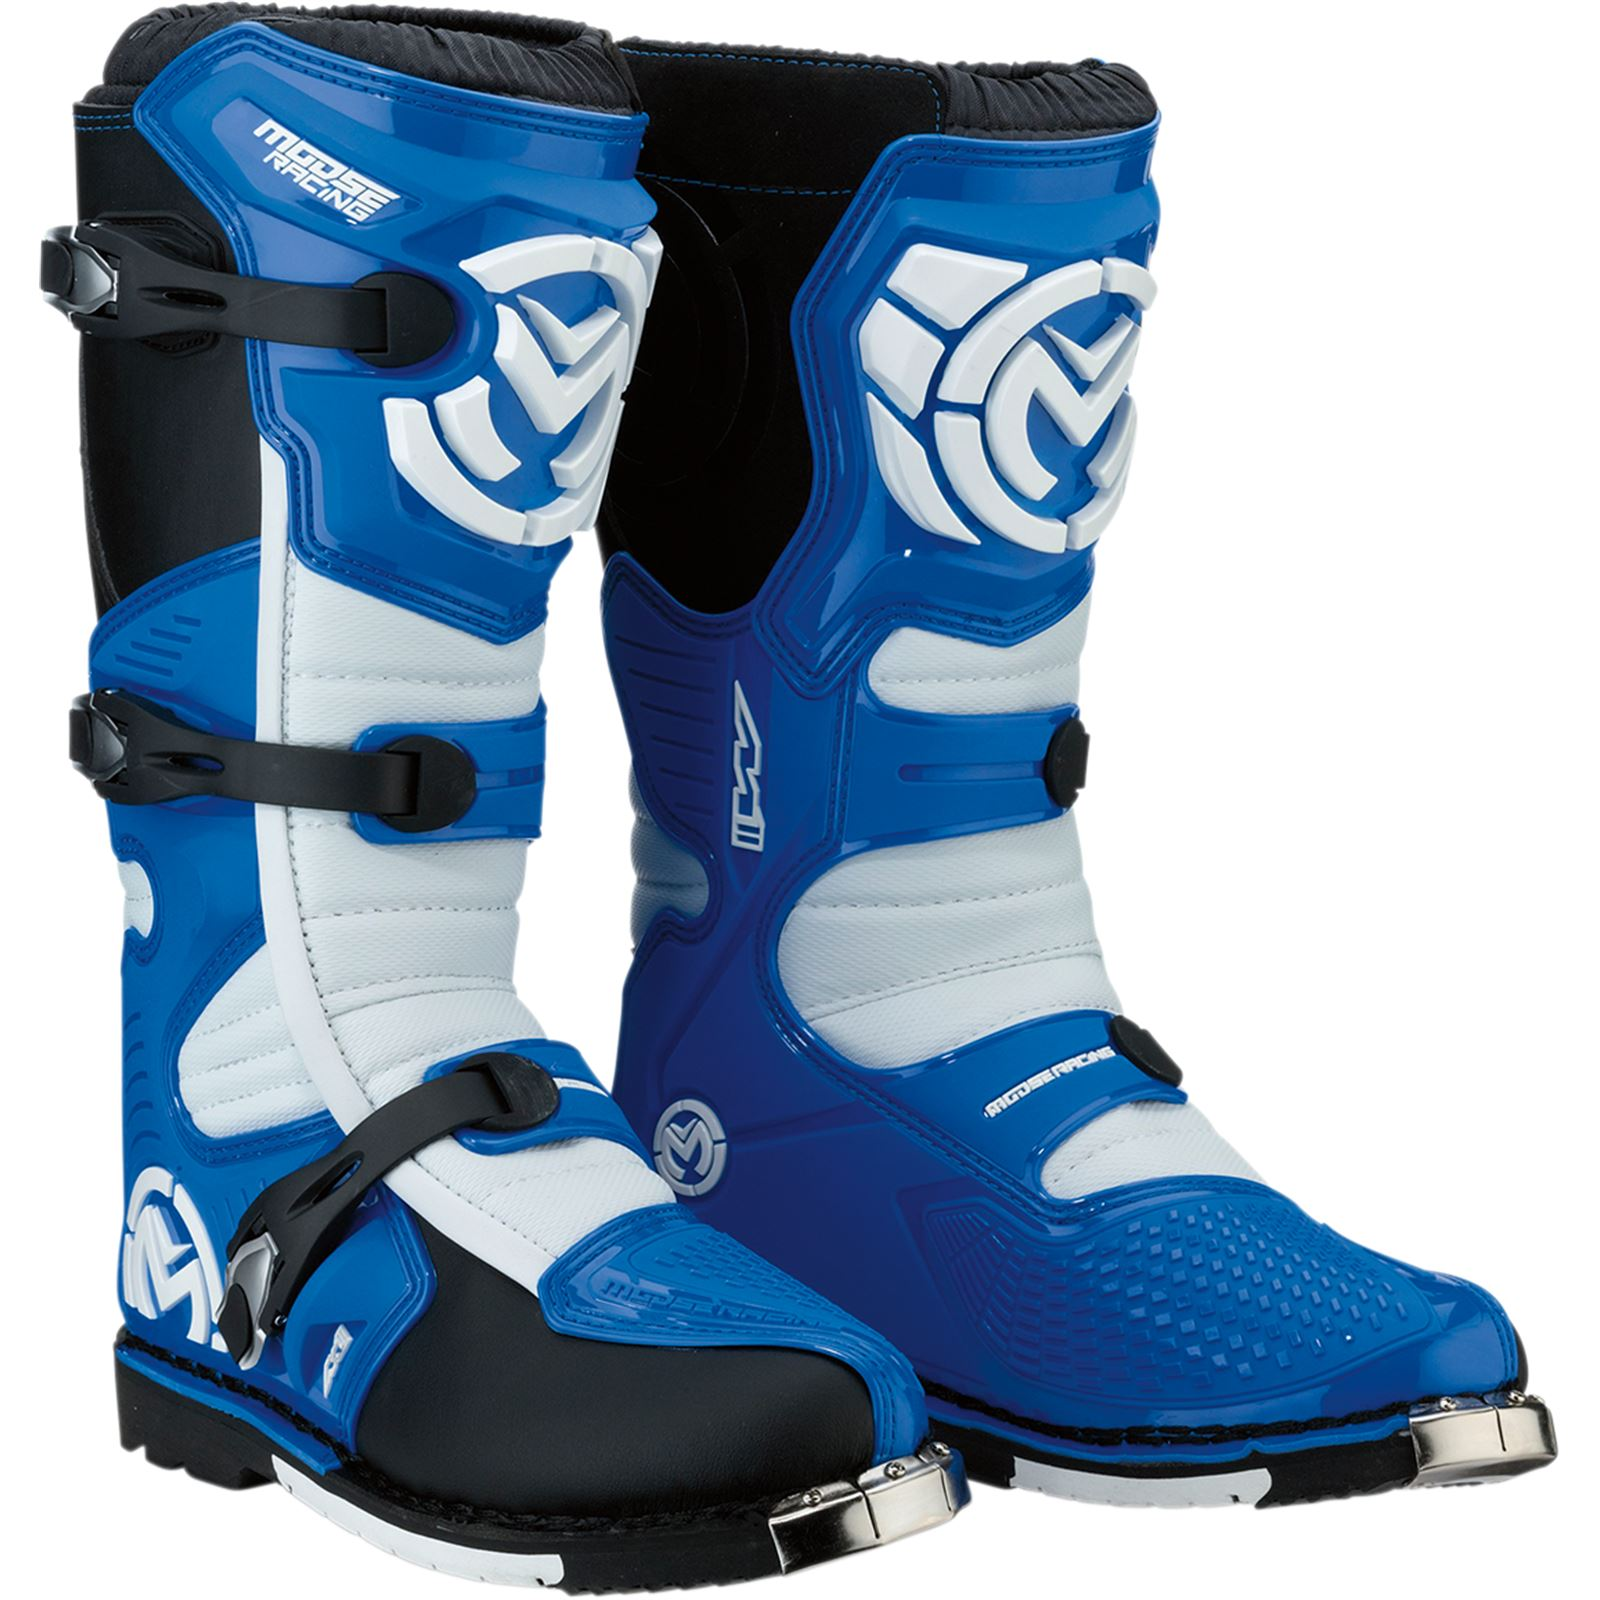 Moose Racing M1.3 MX Boots - Blue - Size 10